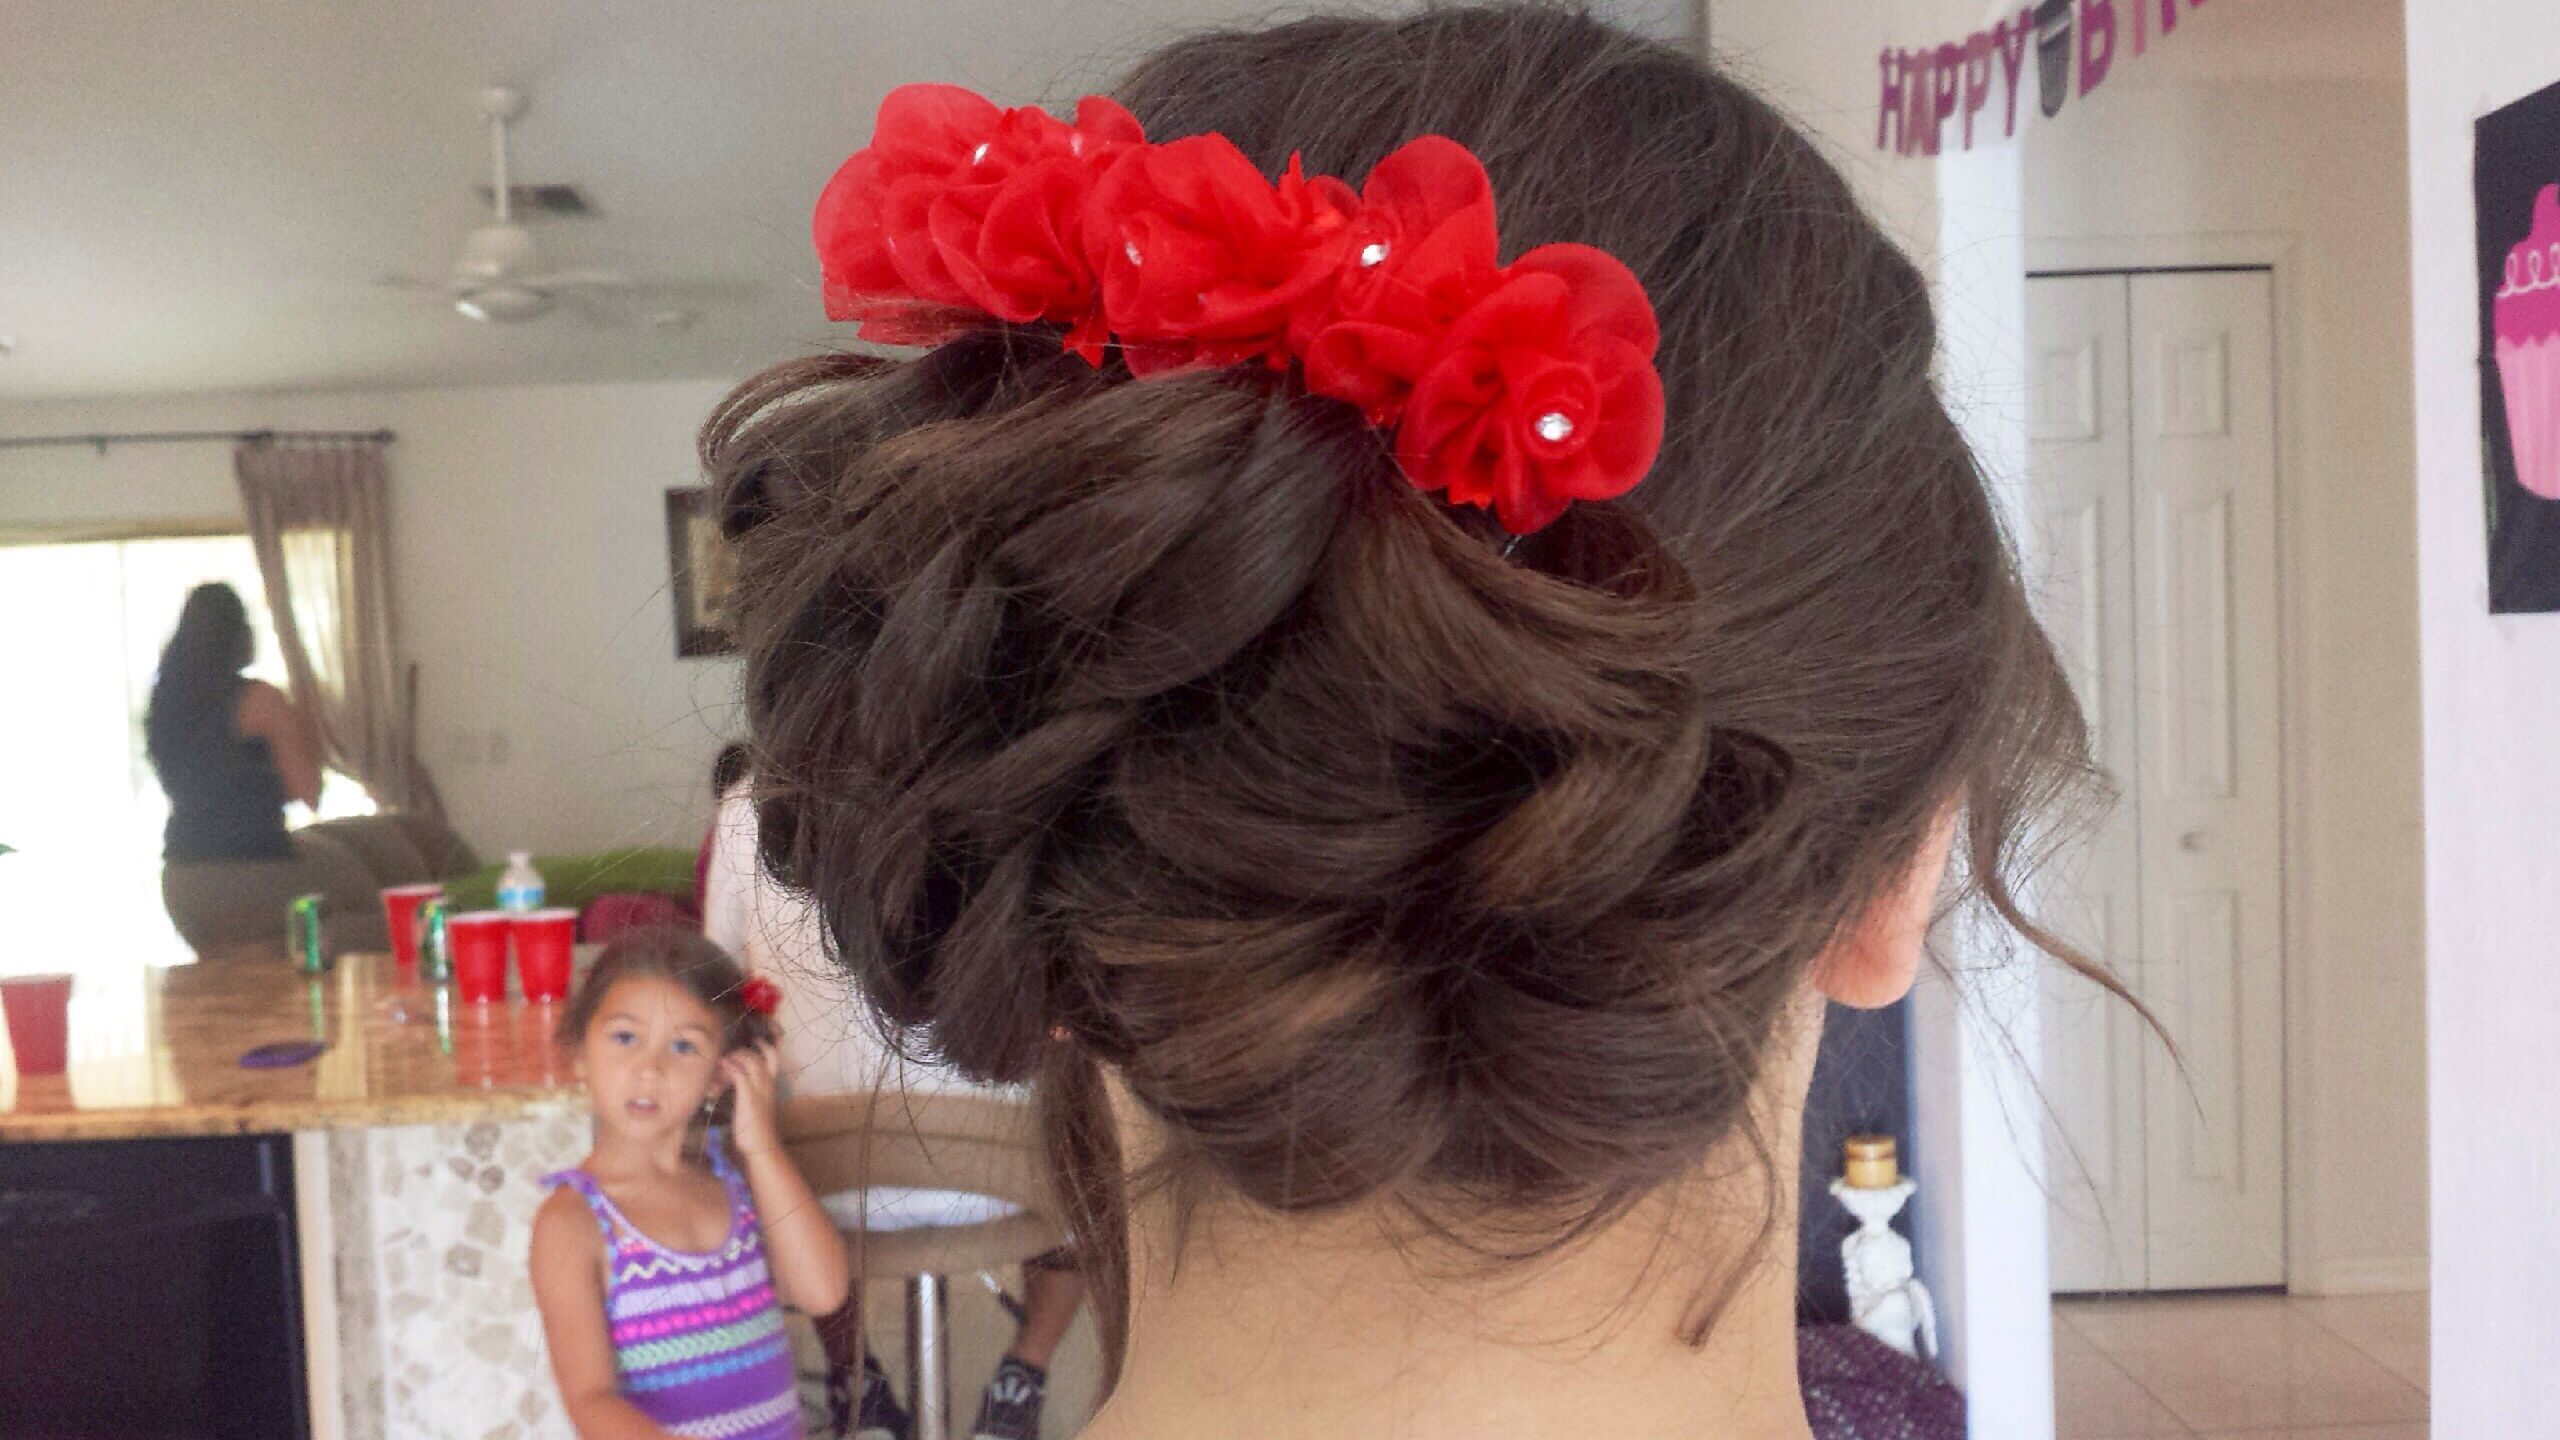 Flower girl hair brown hair curly updo wedding flowers